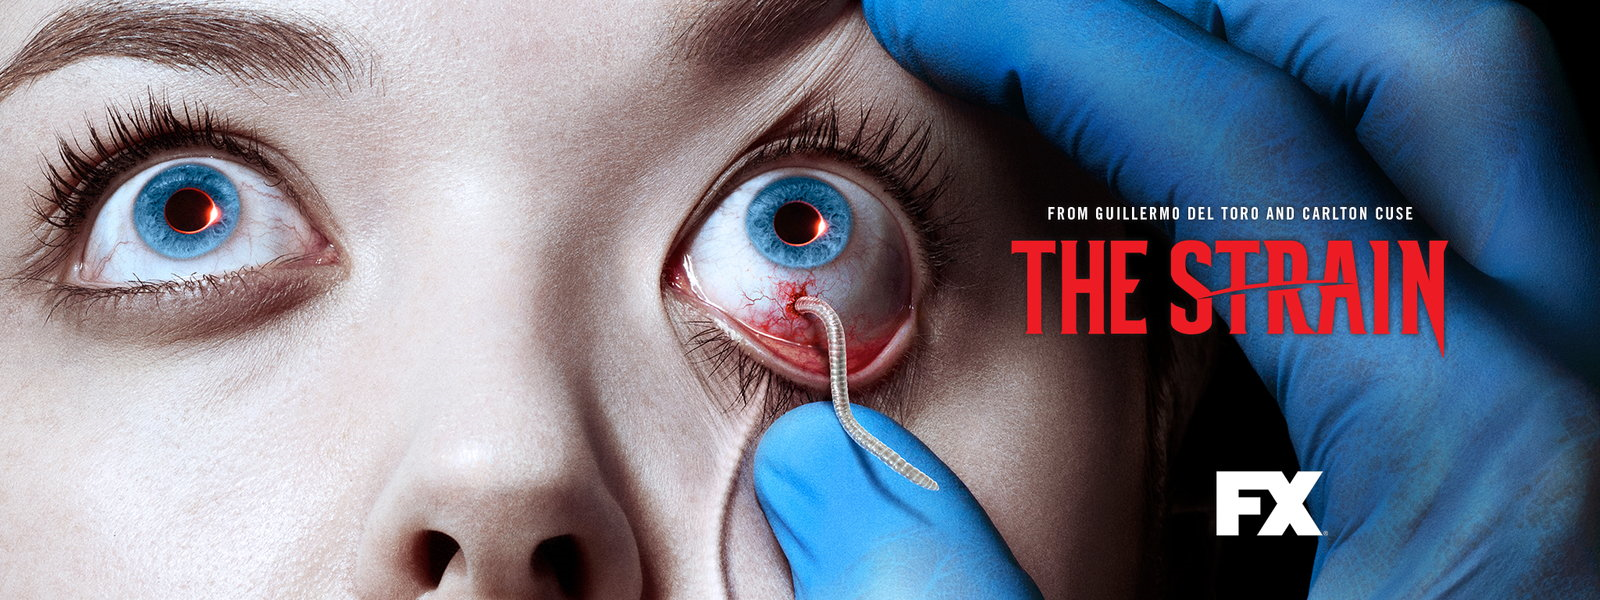 ths - Hulu Signs Up American Horror Story And The Strain